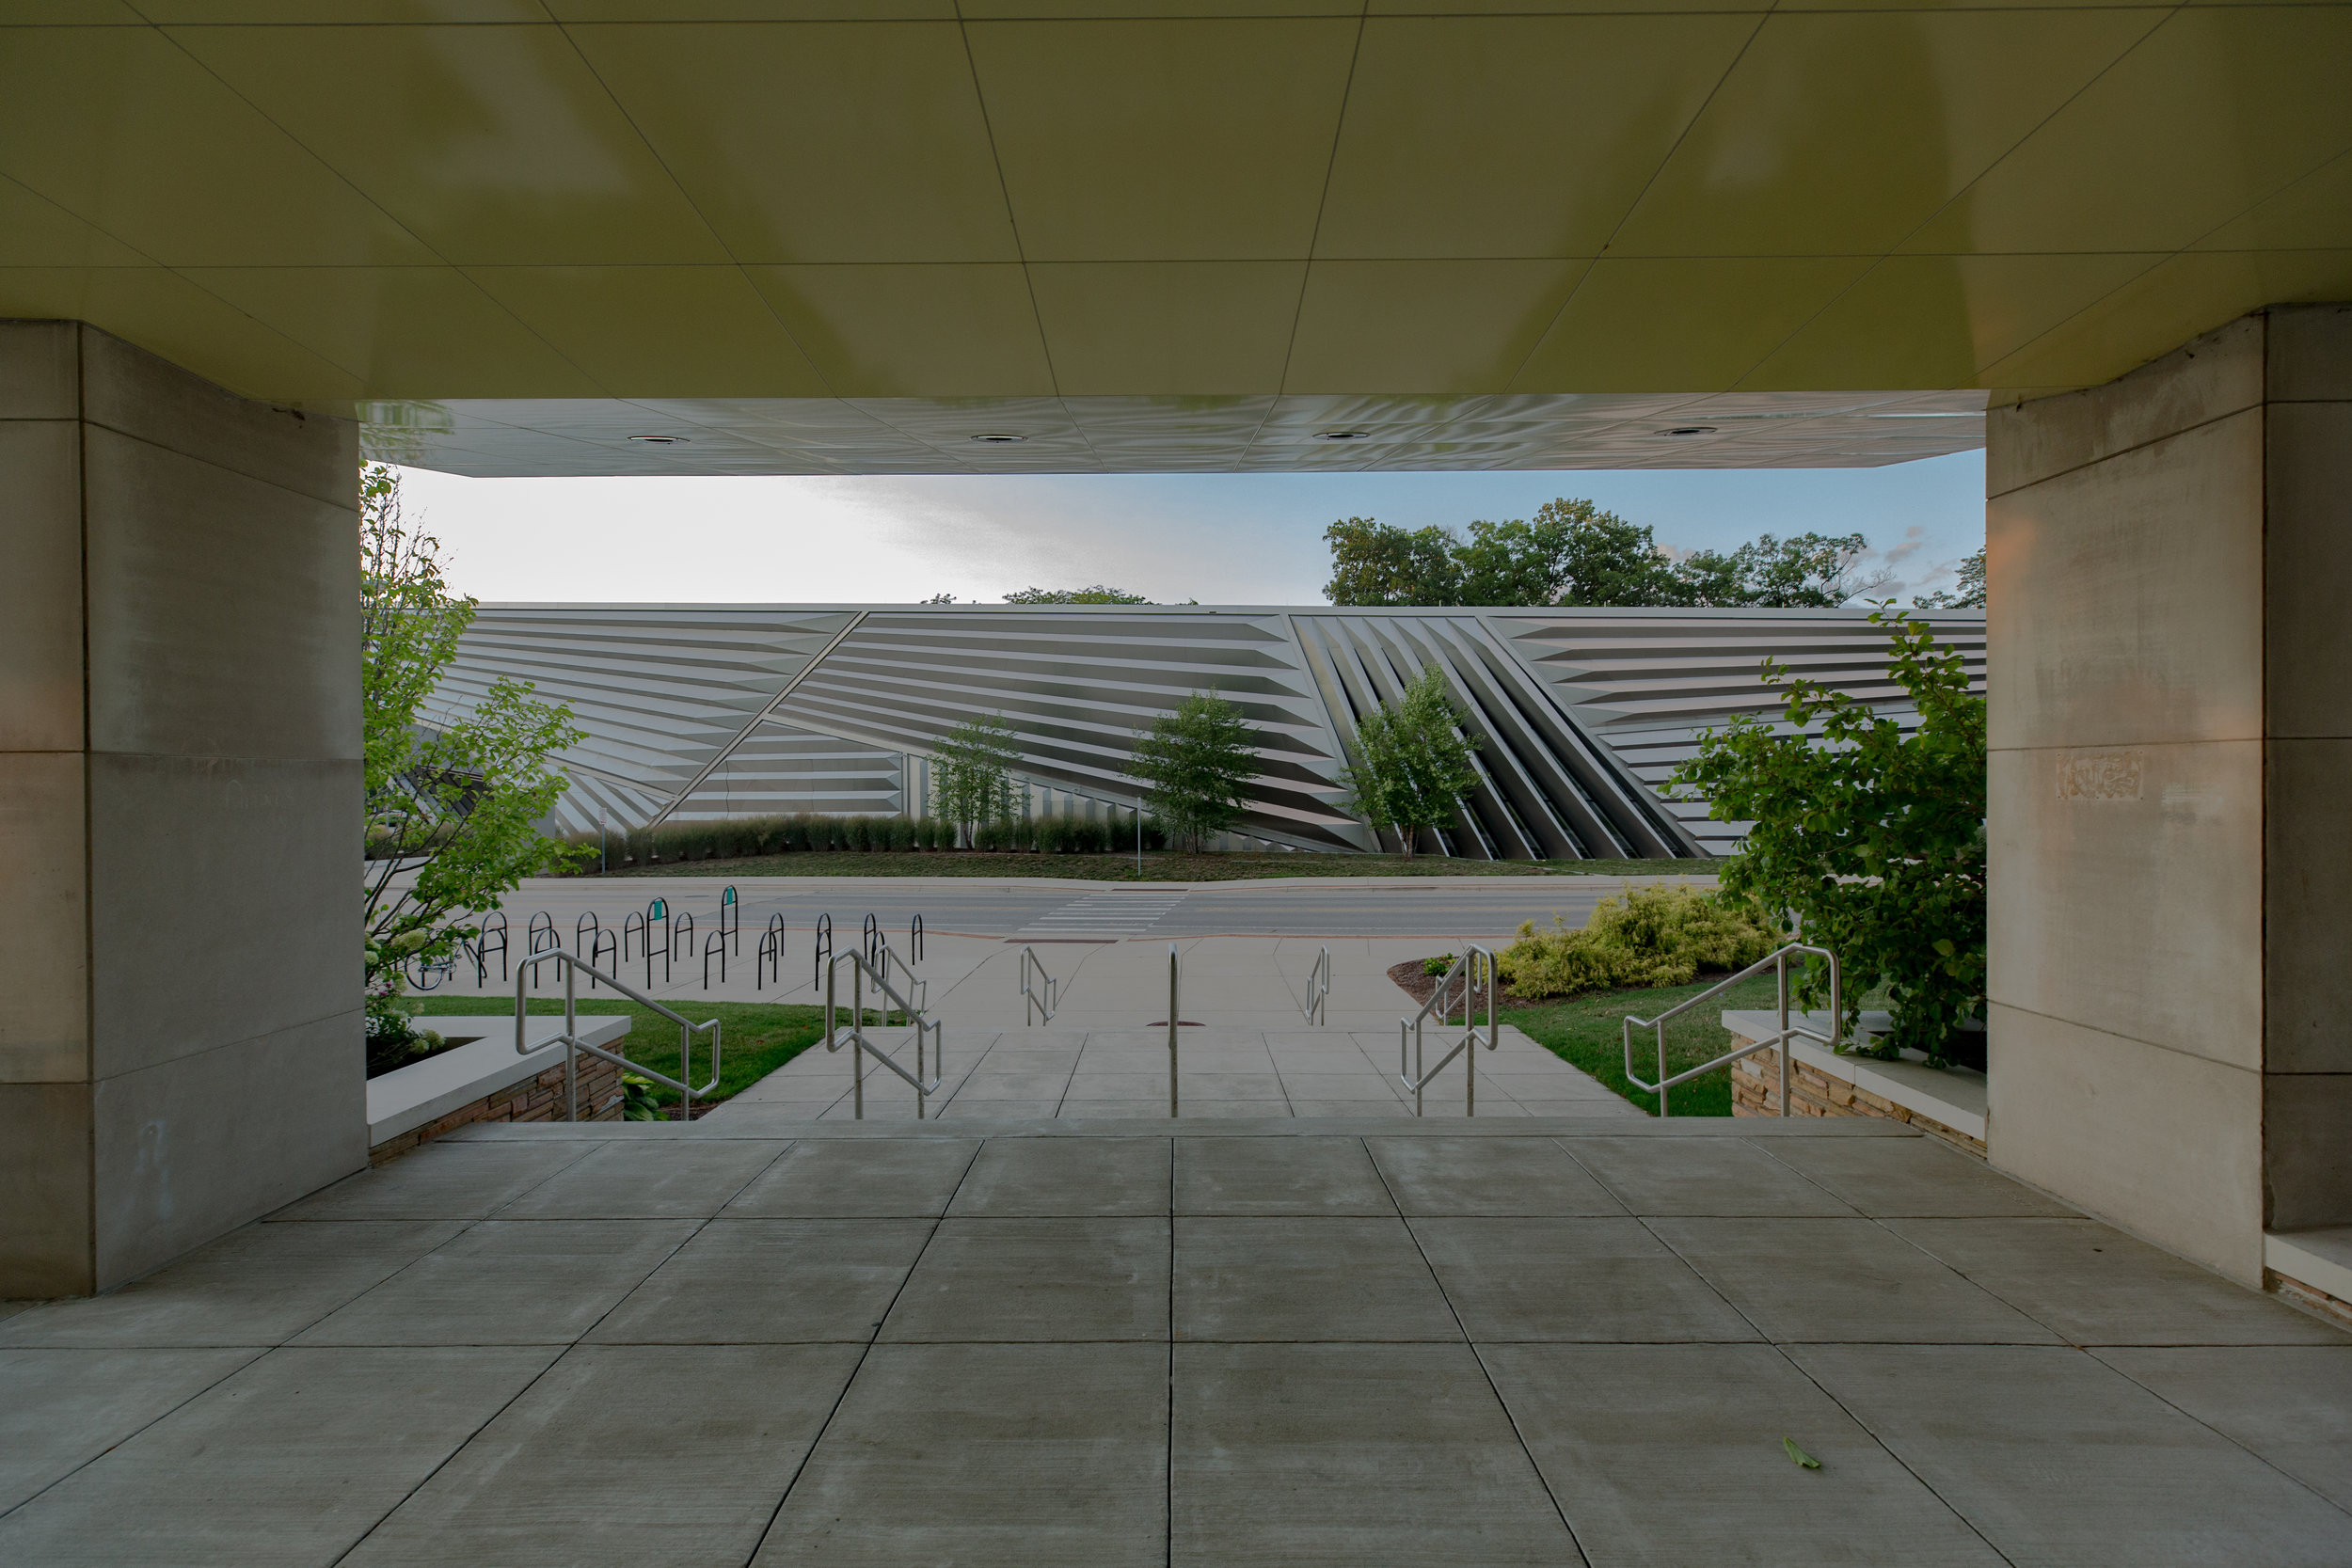 The MSU Broad Museum